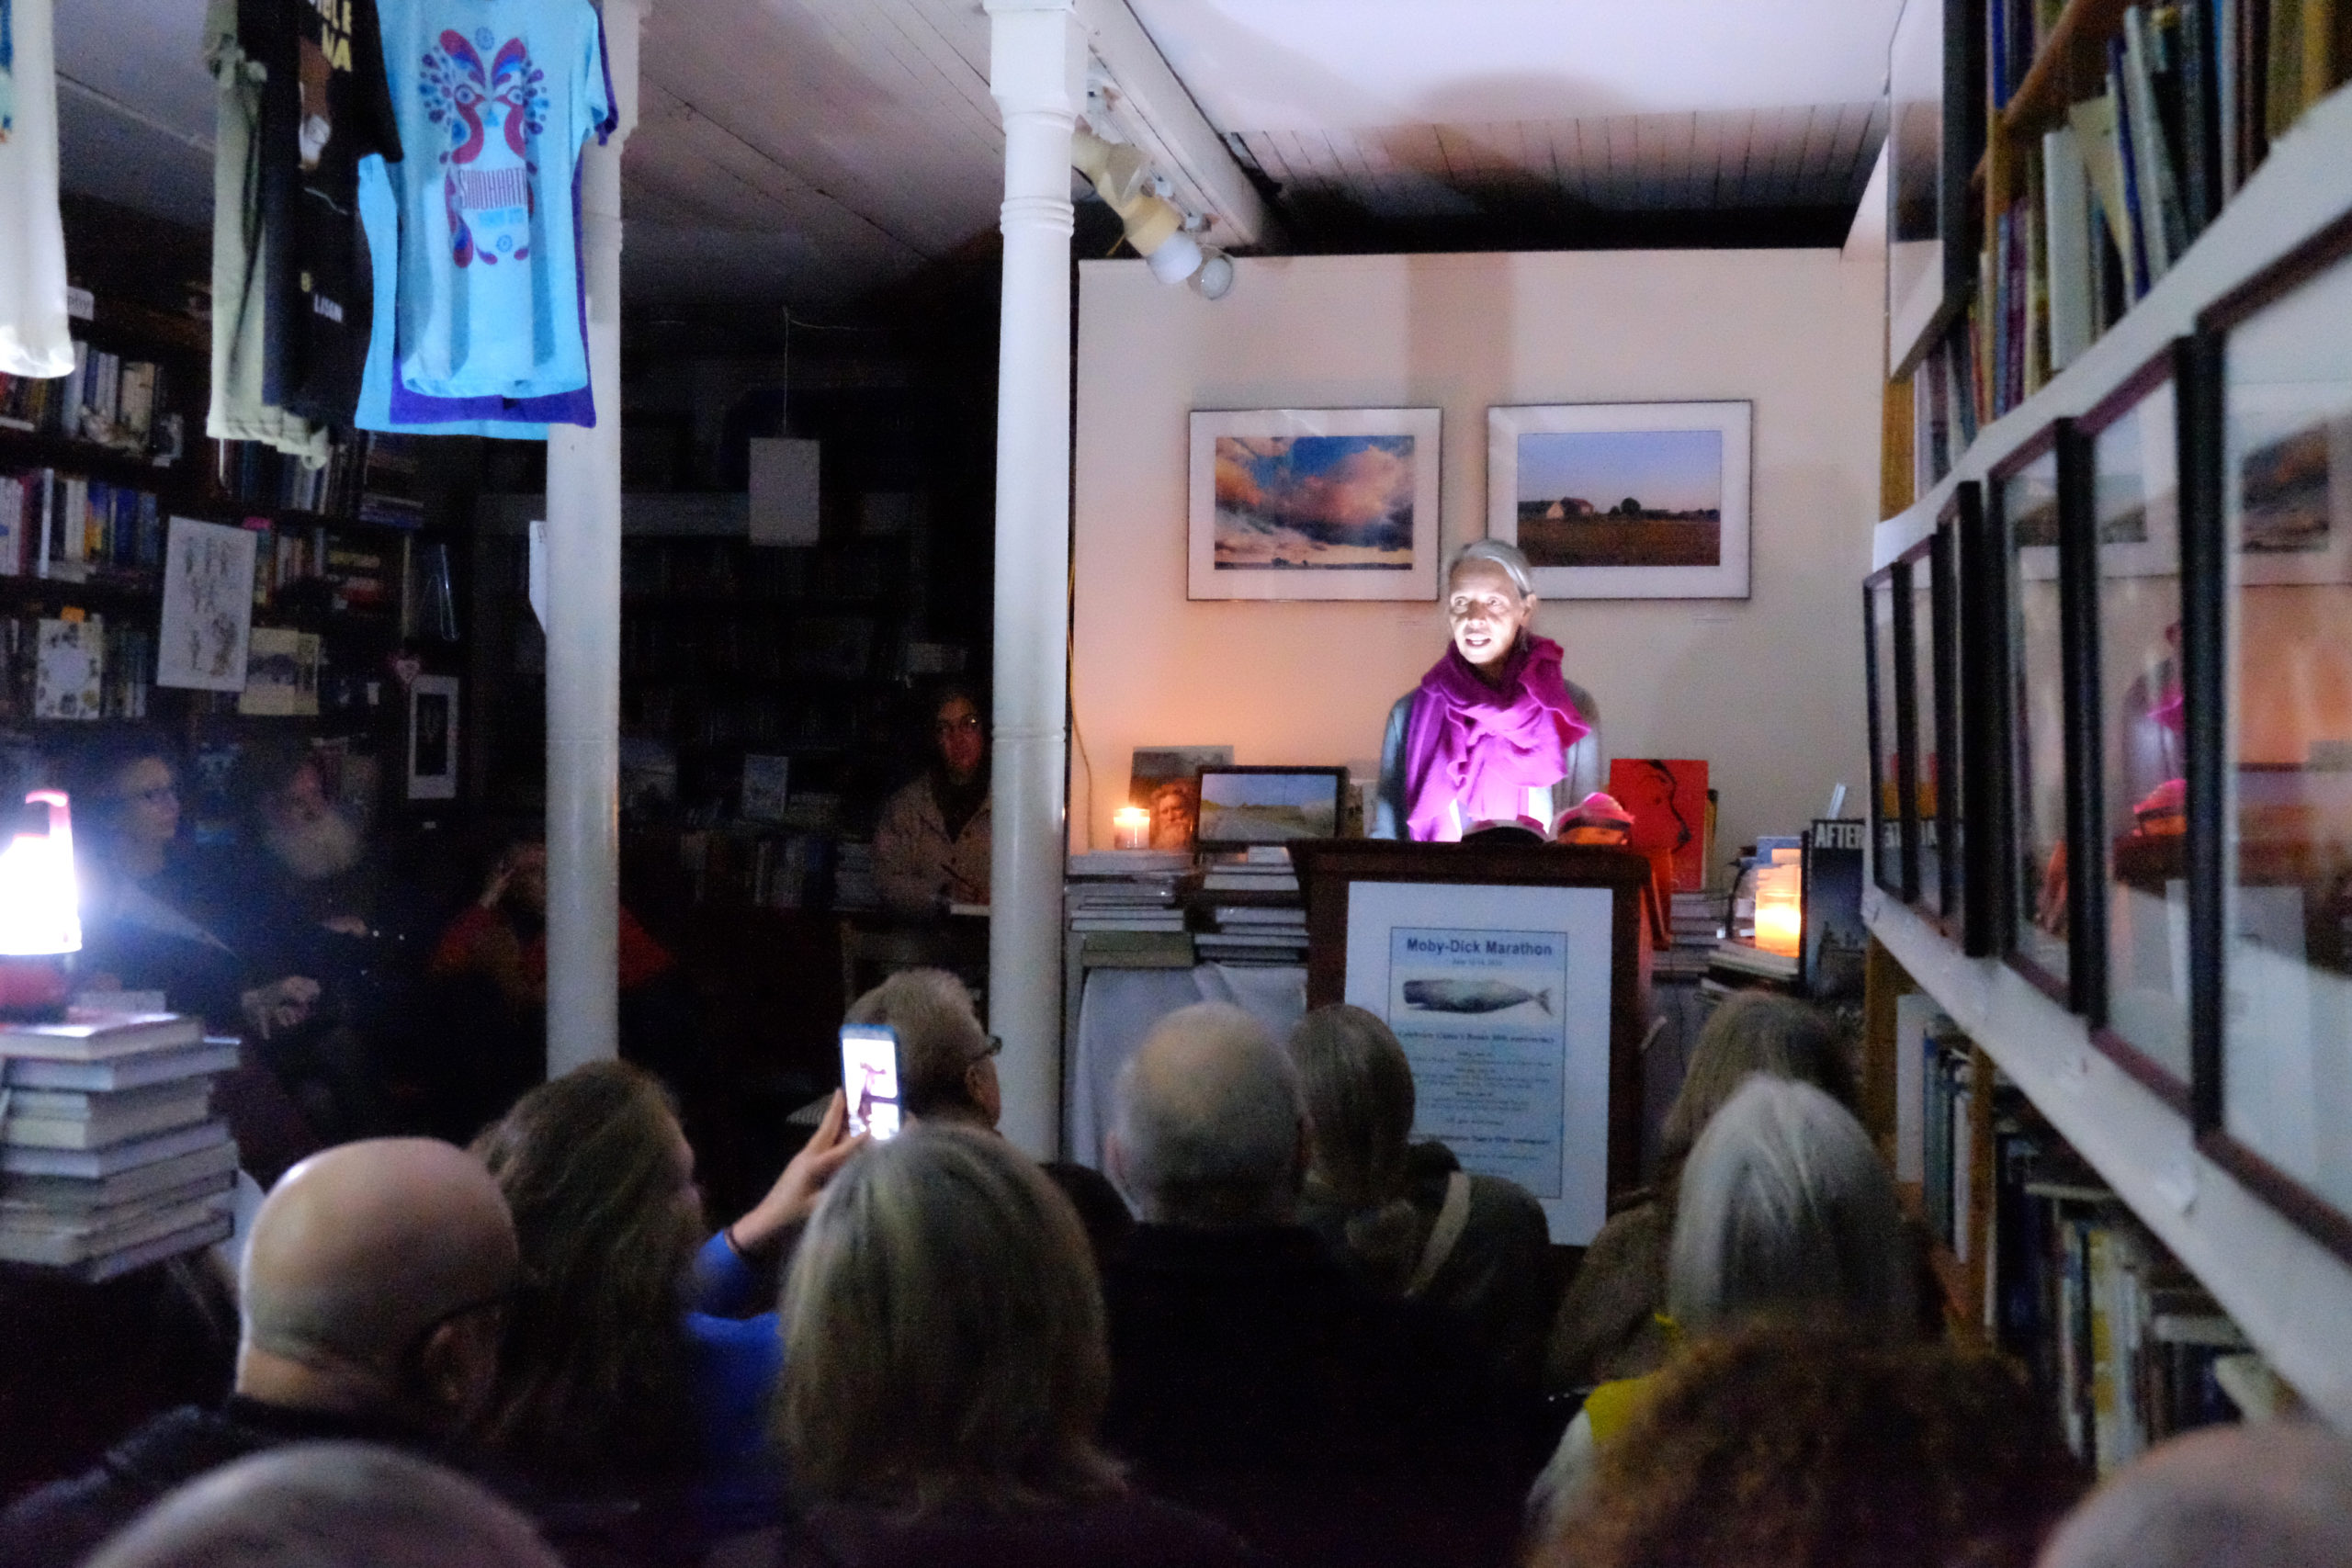 A power failure did not deter Megan Chaskey from her reading at Canio's in January 2016. KATHRYN SZOKA